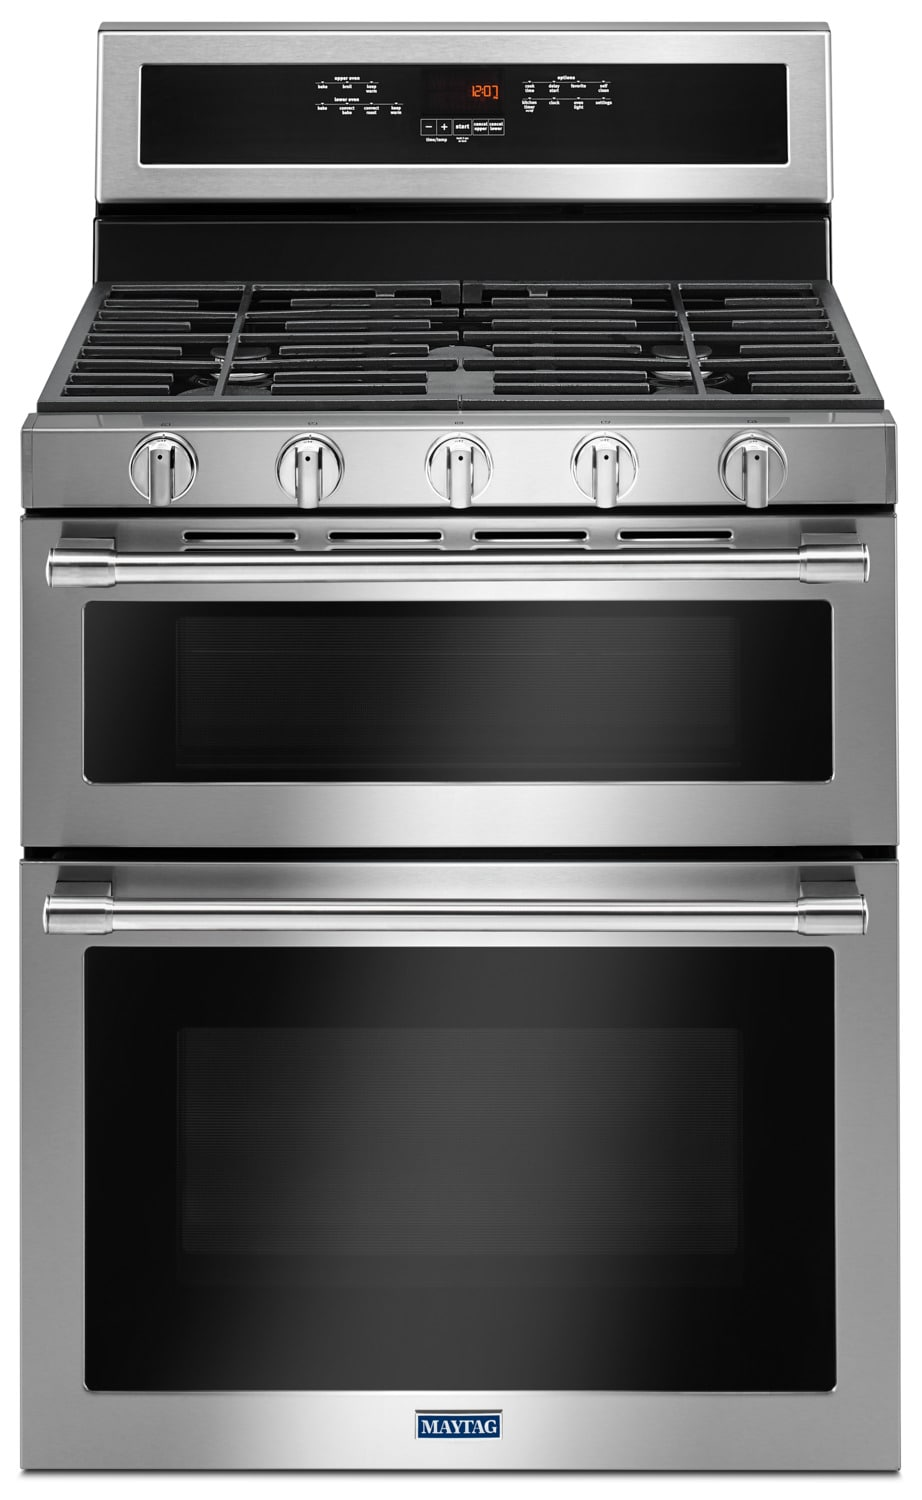 Cooking Products - Maytag Stainless Steel Freestanding Gas Double Oven (6.0 Cu. Ft.) - MGT8800FZ